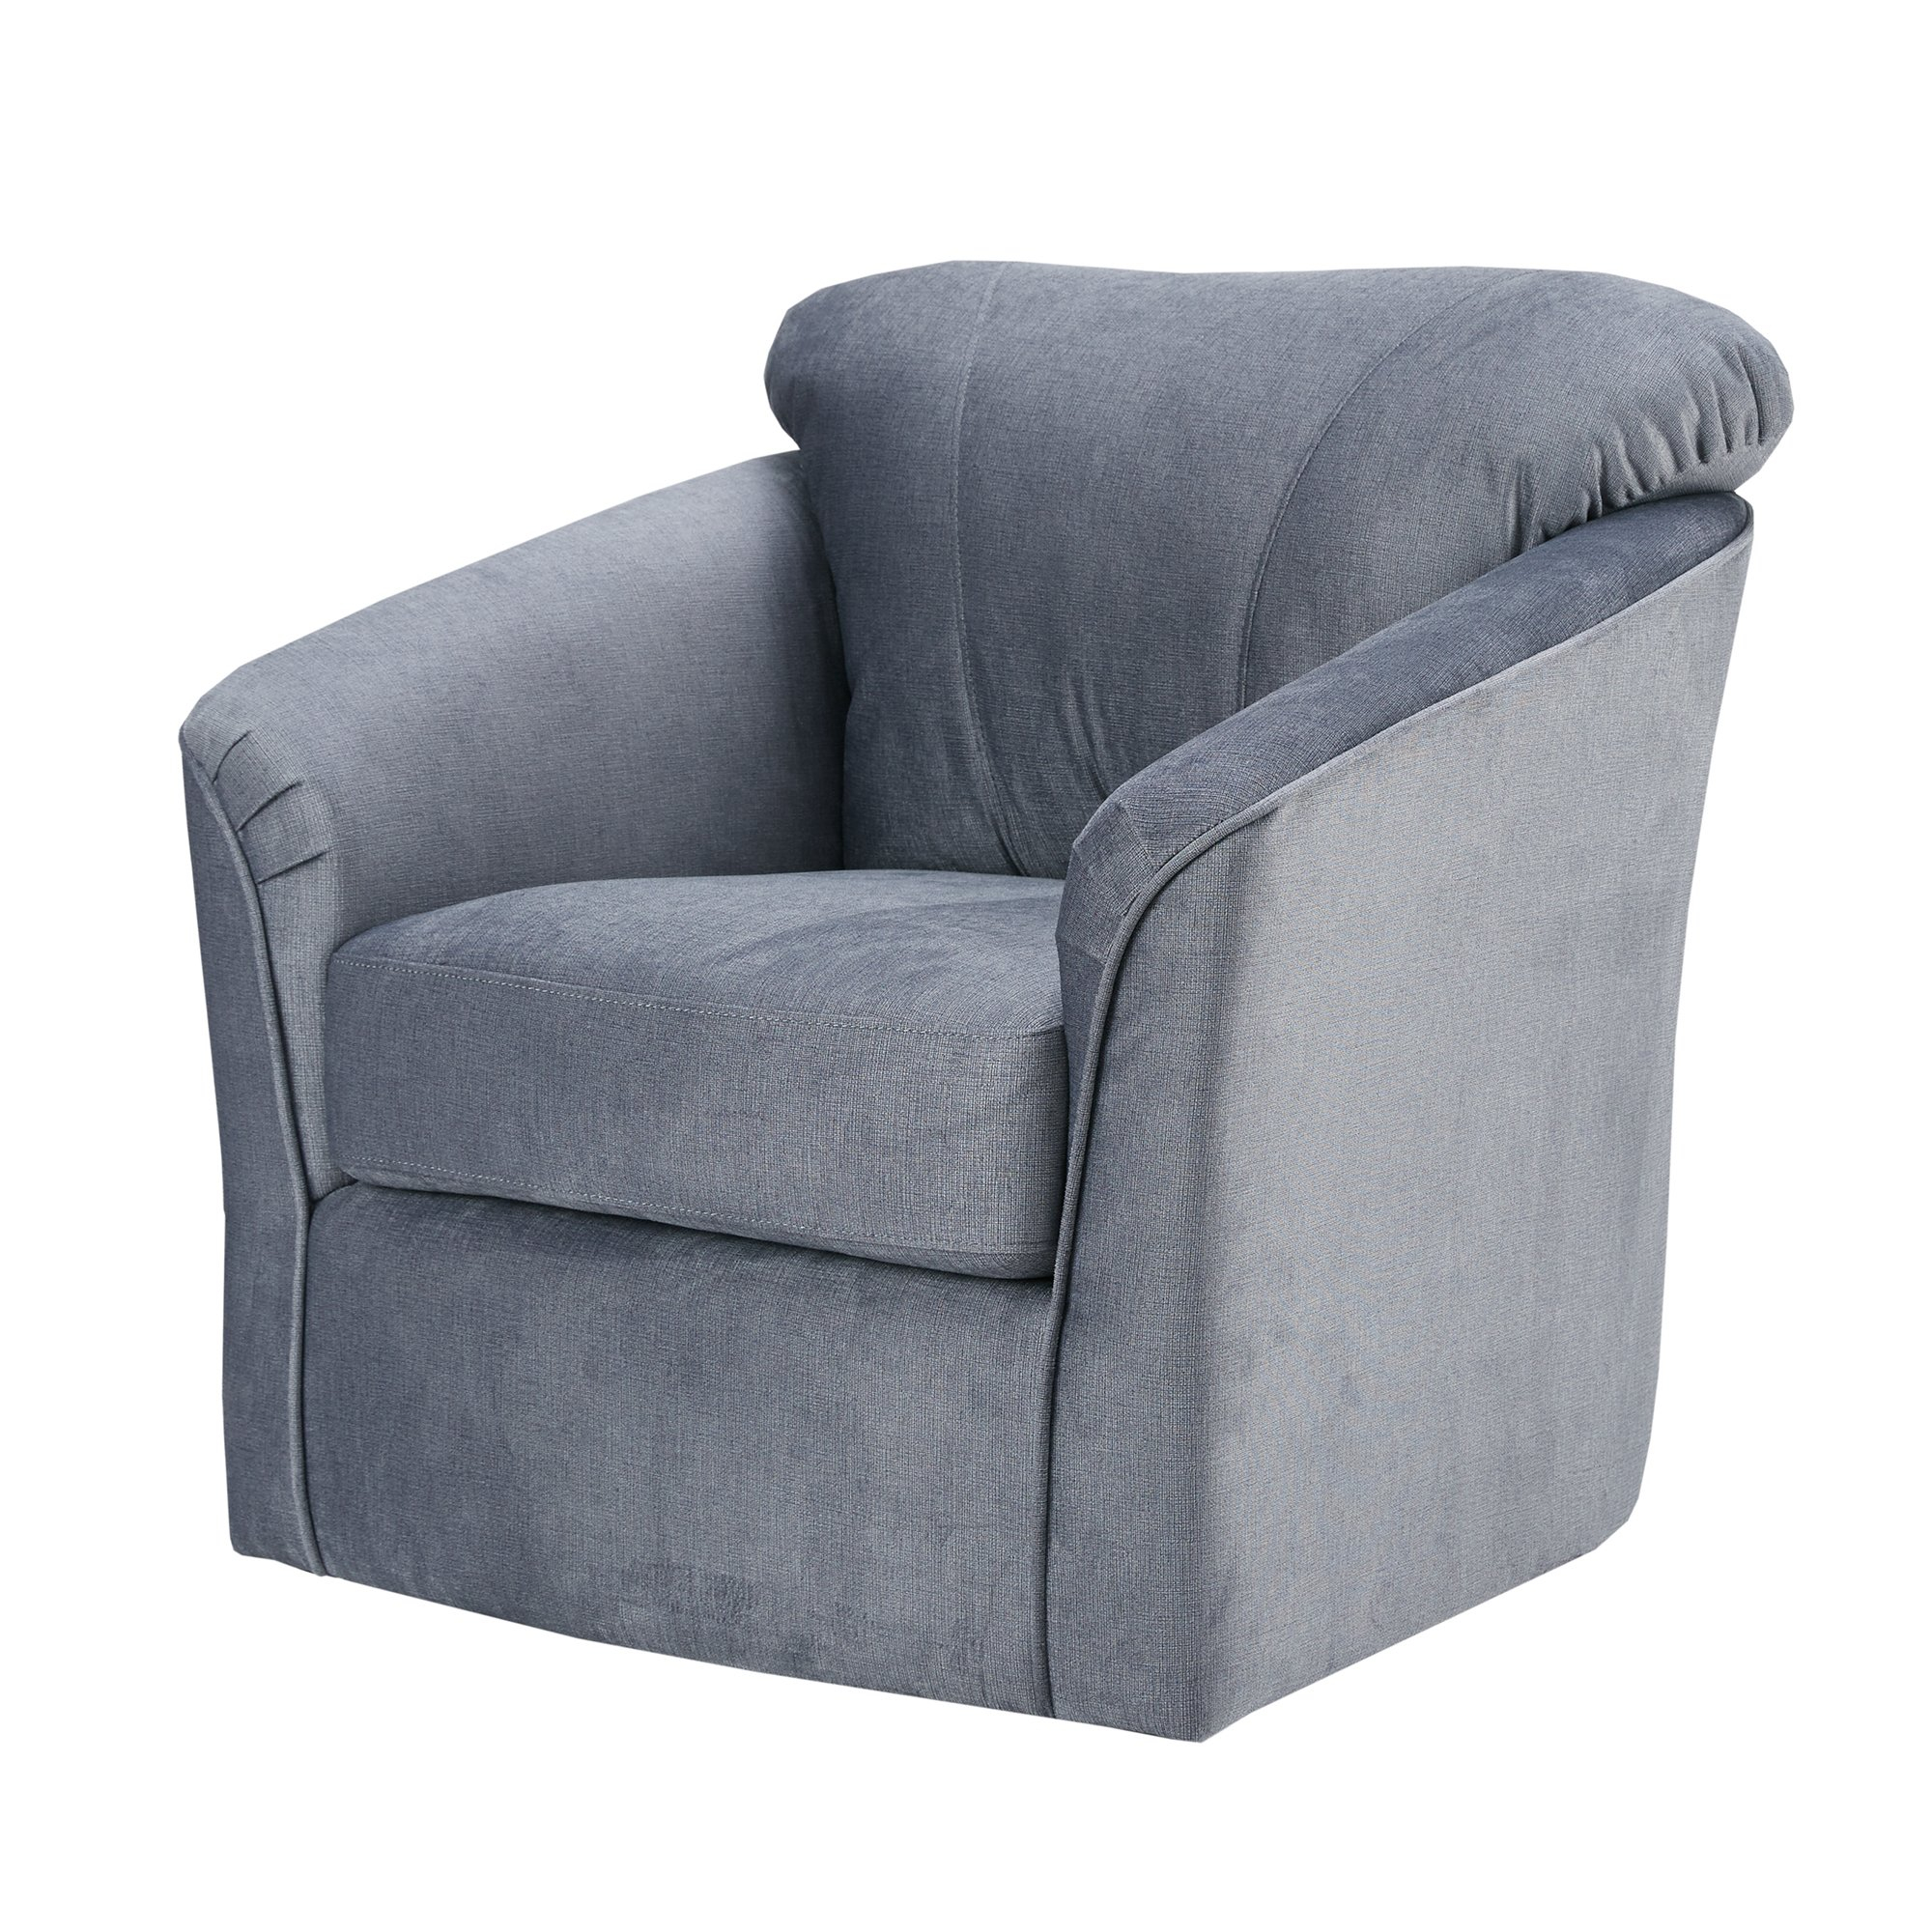 Shop Madison Park Elgin Grey Swivel Chair – Free Shipping Today For Grey Swivel Chairs (View 14 of 25)